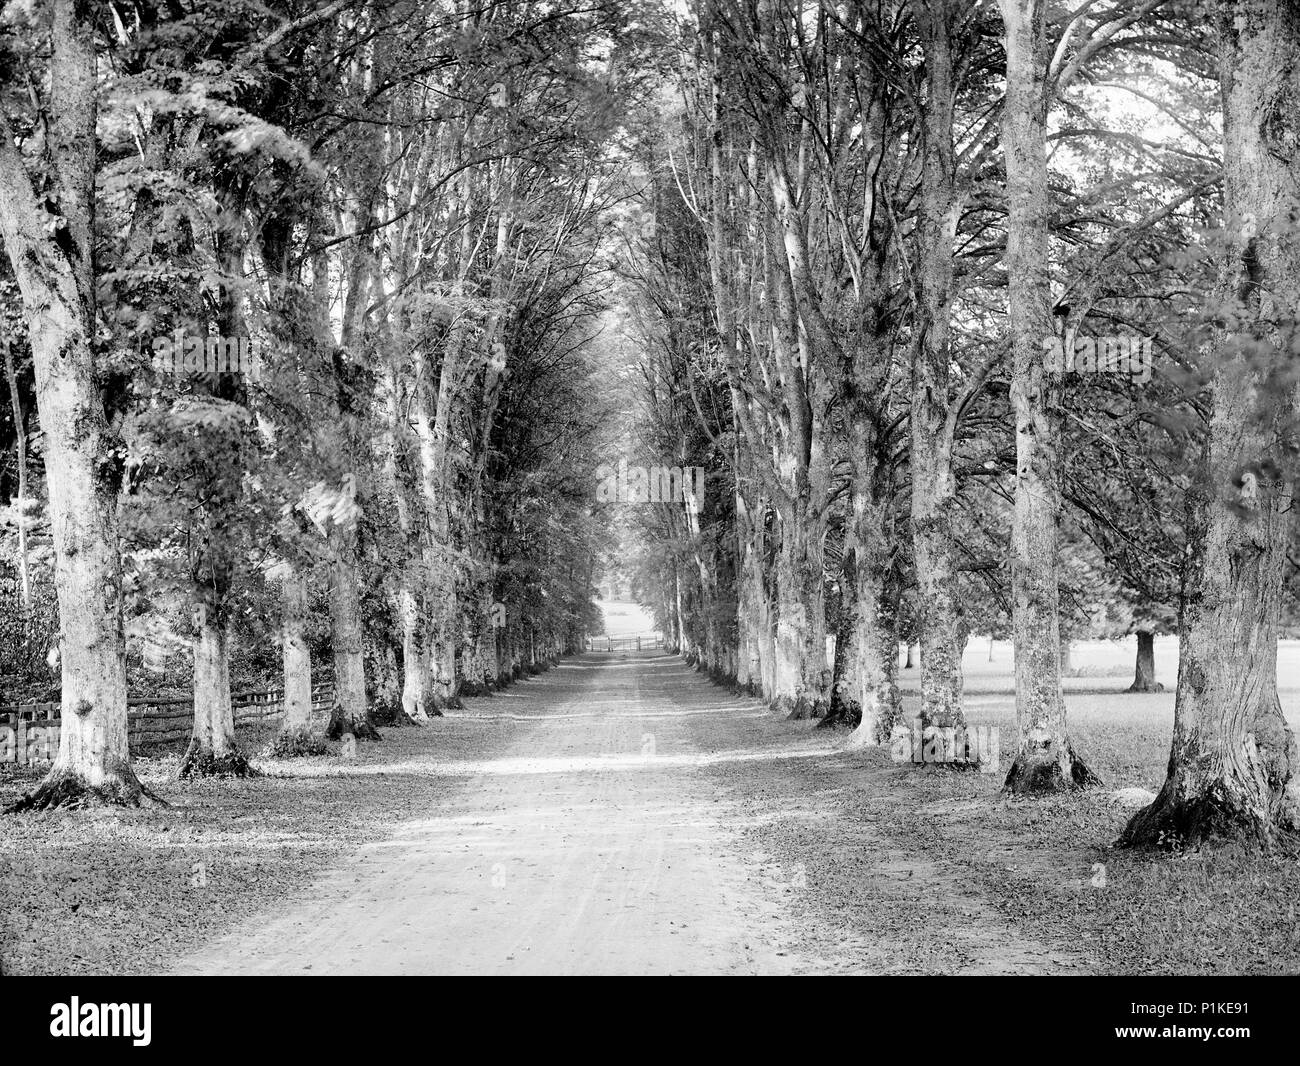 Dames Avenue, Highclere Castle, Hampshire, c1860-c1922. View looking down the avenue towards a gate in the park. - Stock Image